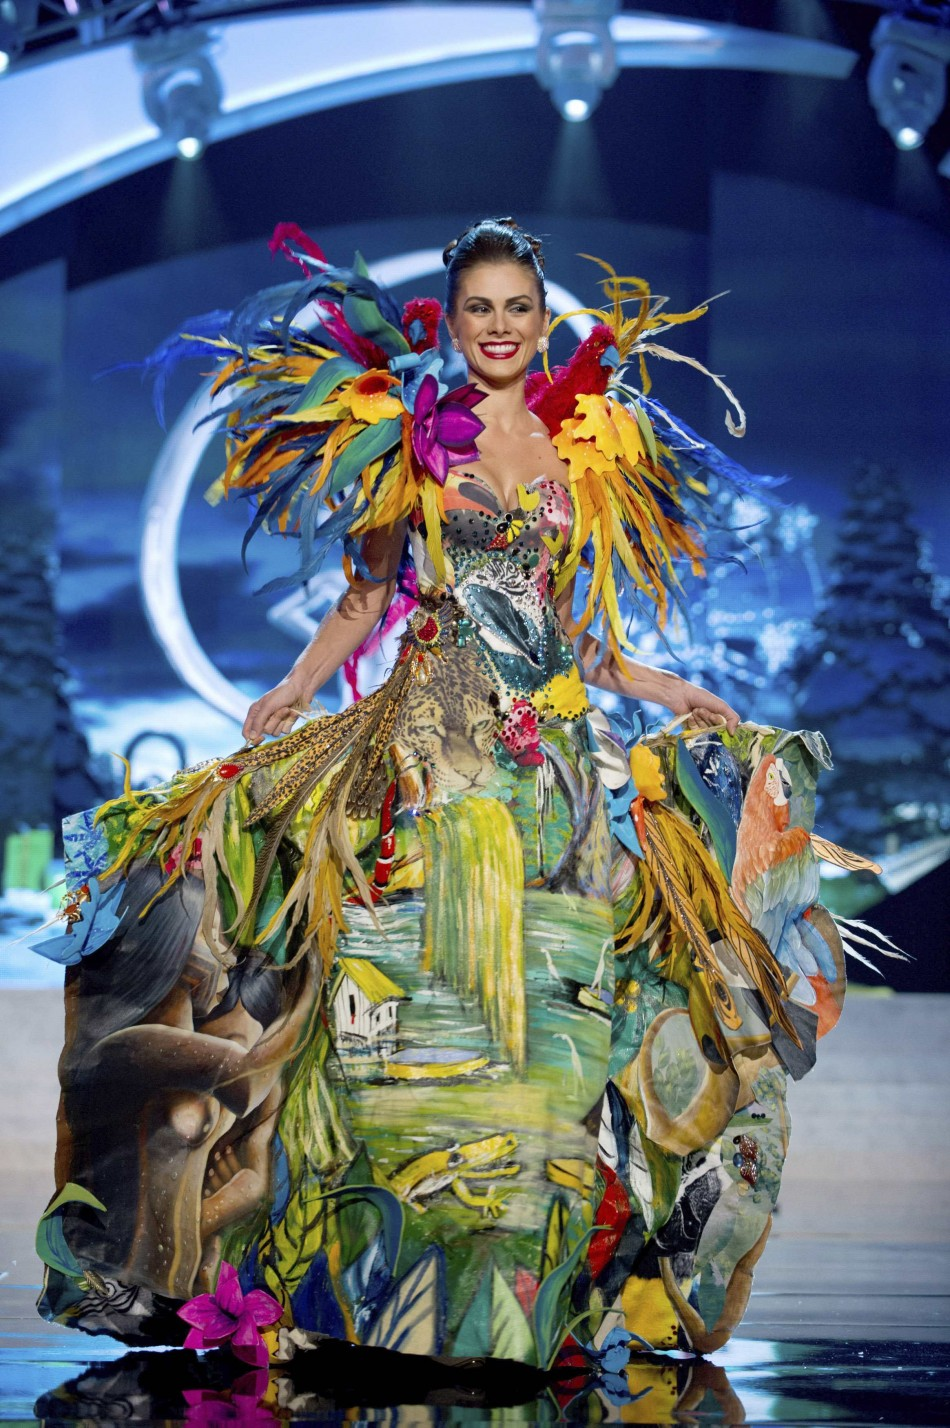 Miss Brazil Gabriela Markus on stage at the 2012 Miss Universe National Costume Show at PH Live in Las Vegas